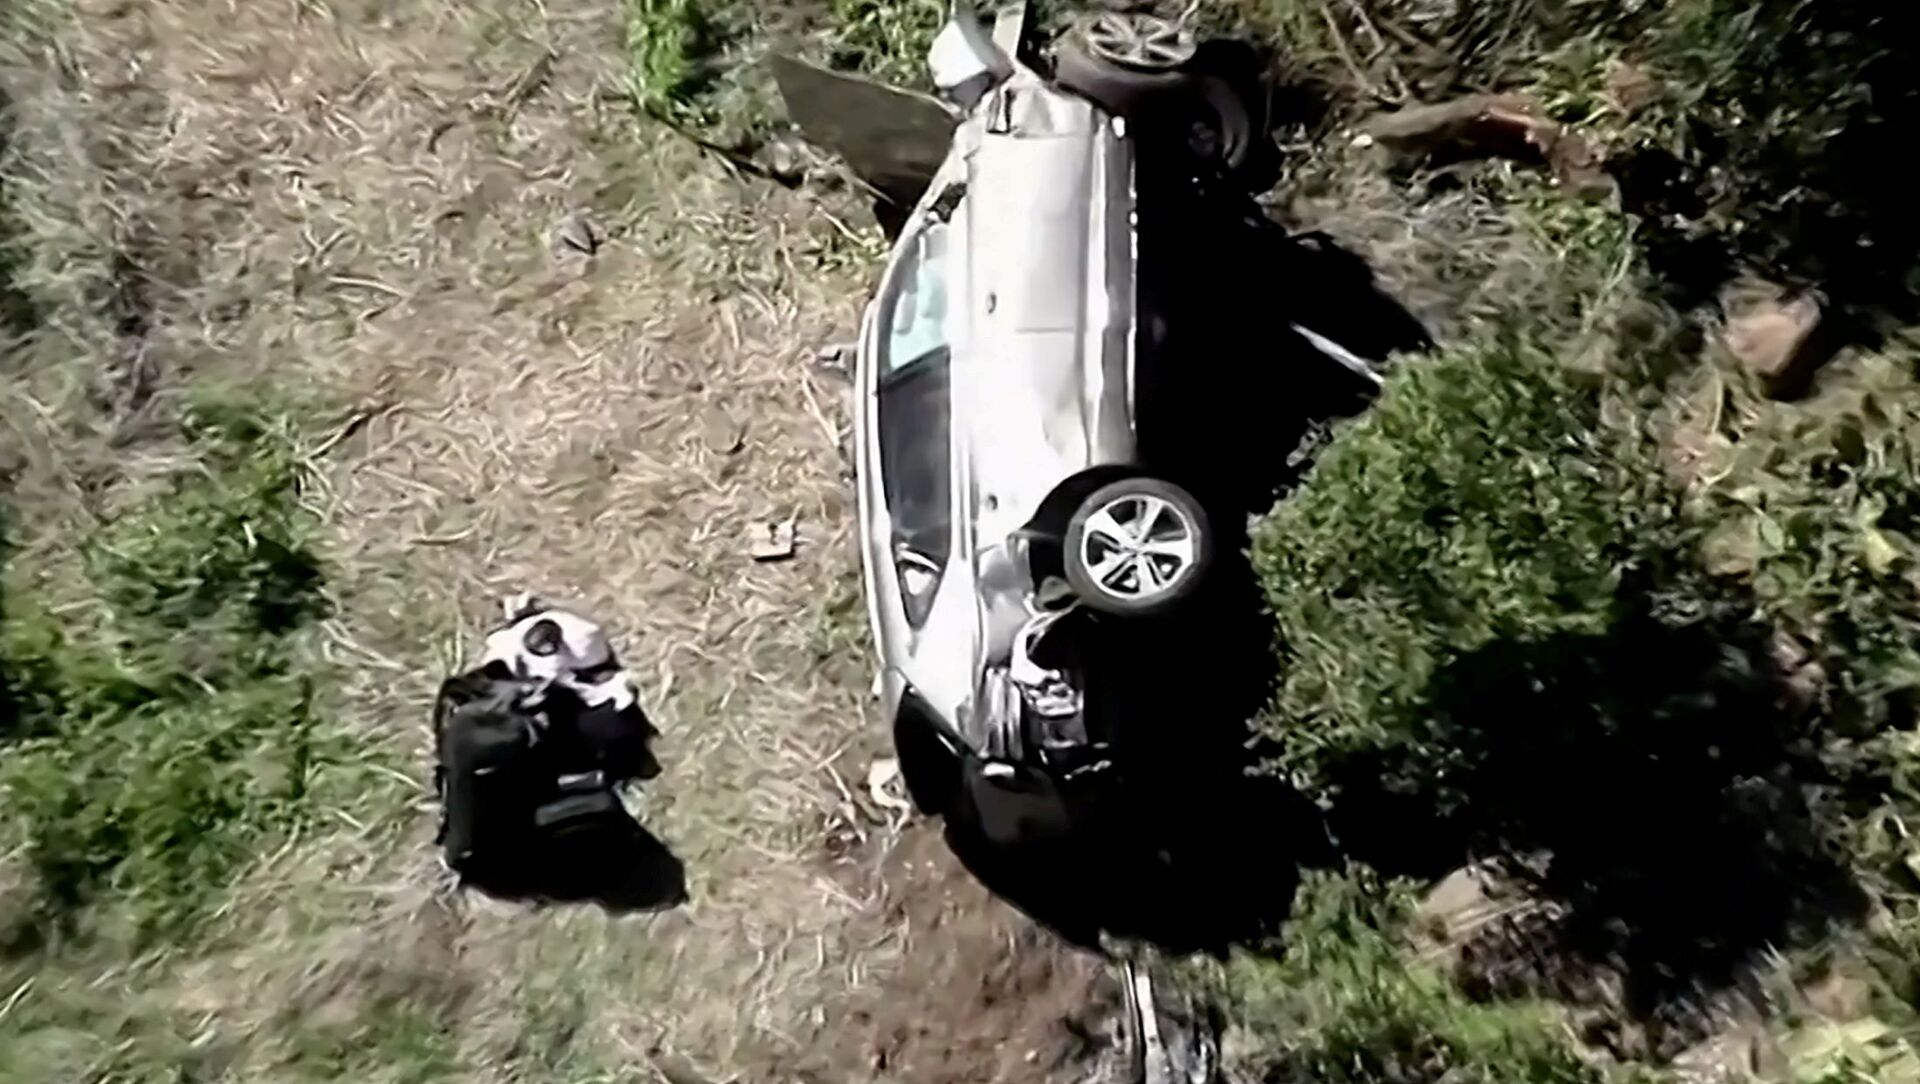 The vehicle of golfer Tiger Woods, who was rushed to hospital after suffering multiple injuries, lies on its side after being involved in a single-vehicle accident in Los Angeles, California, U.S. in a still image from video taken February 23, 2021 - Sputnik Italia, 1920, 24.02.2021